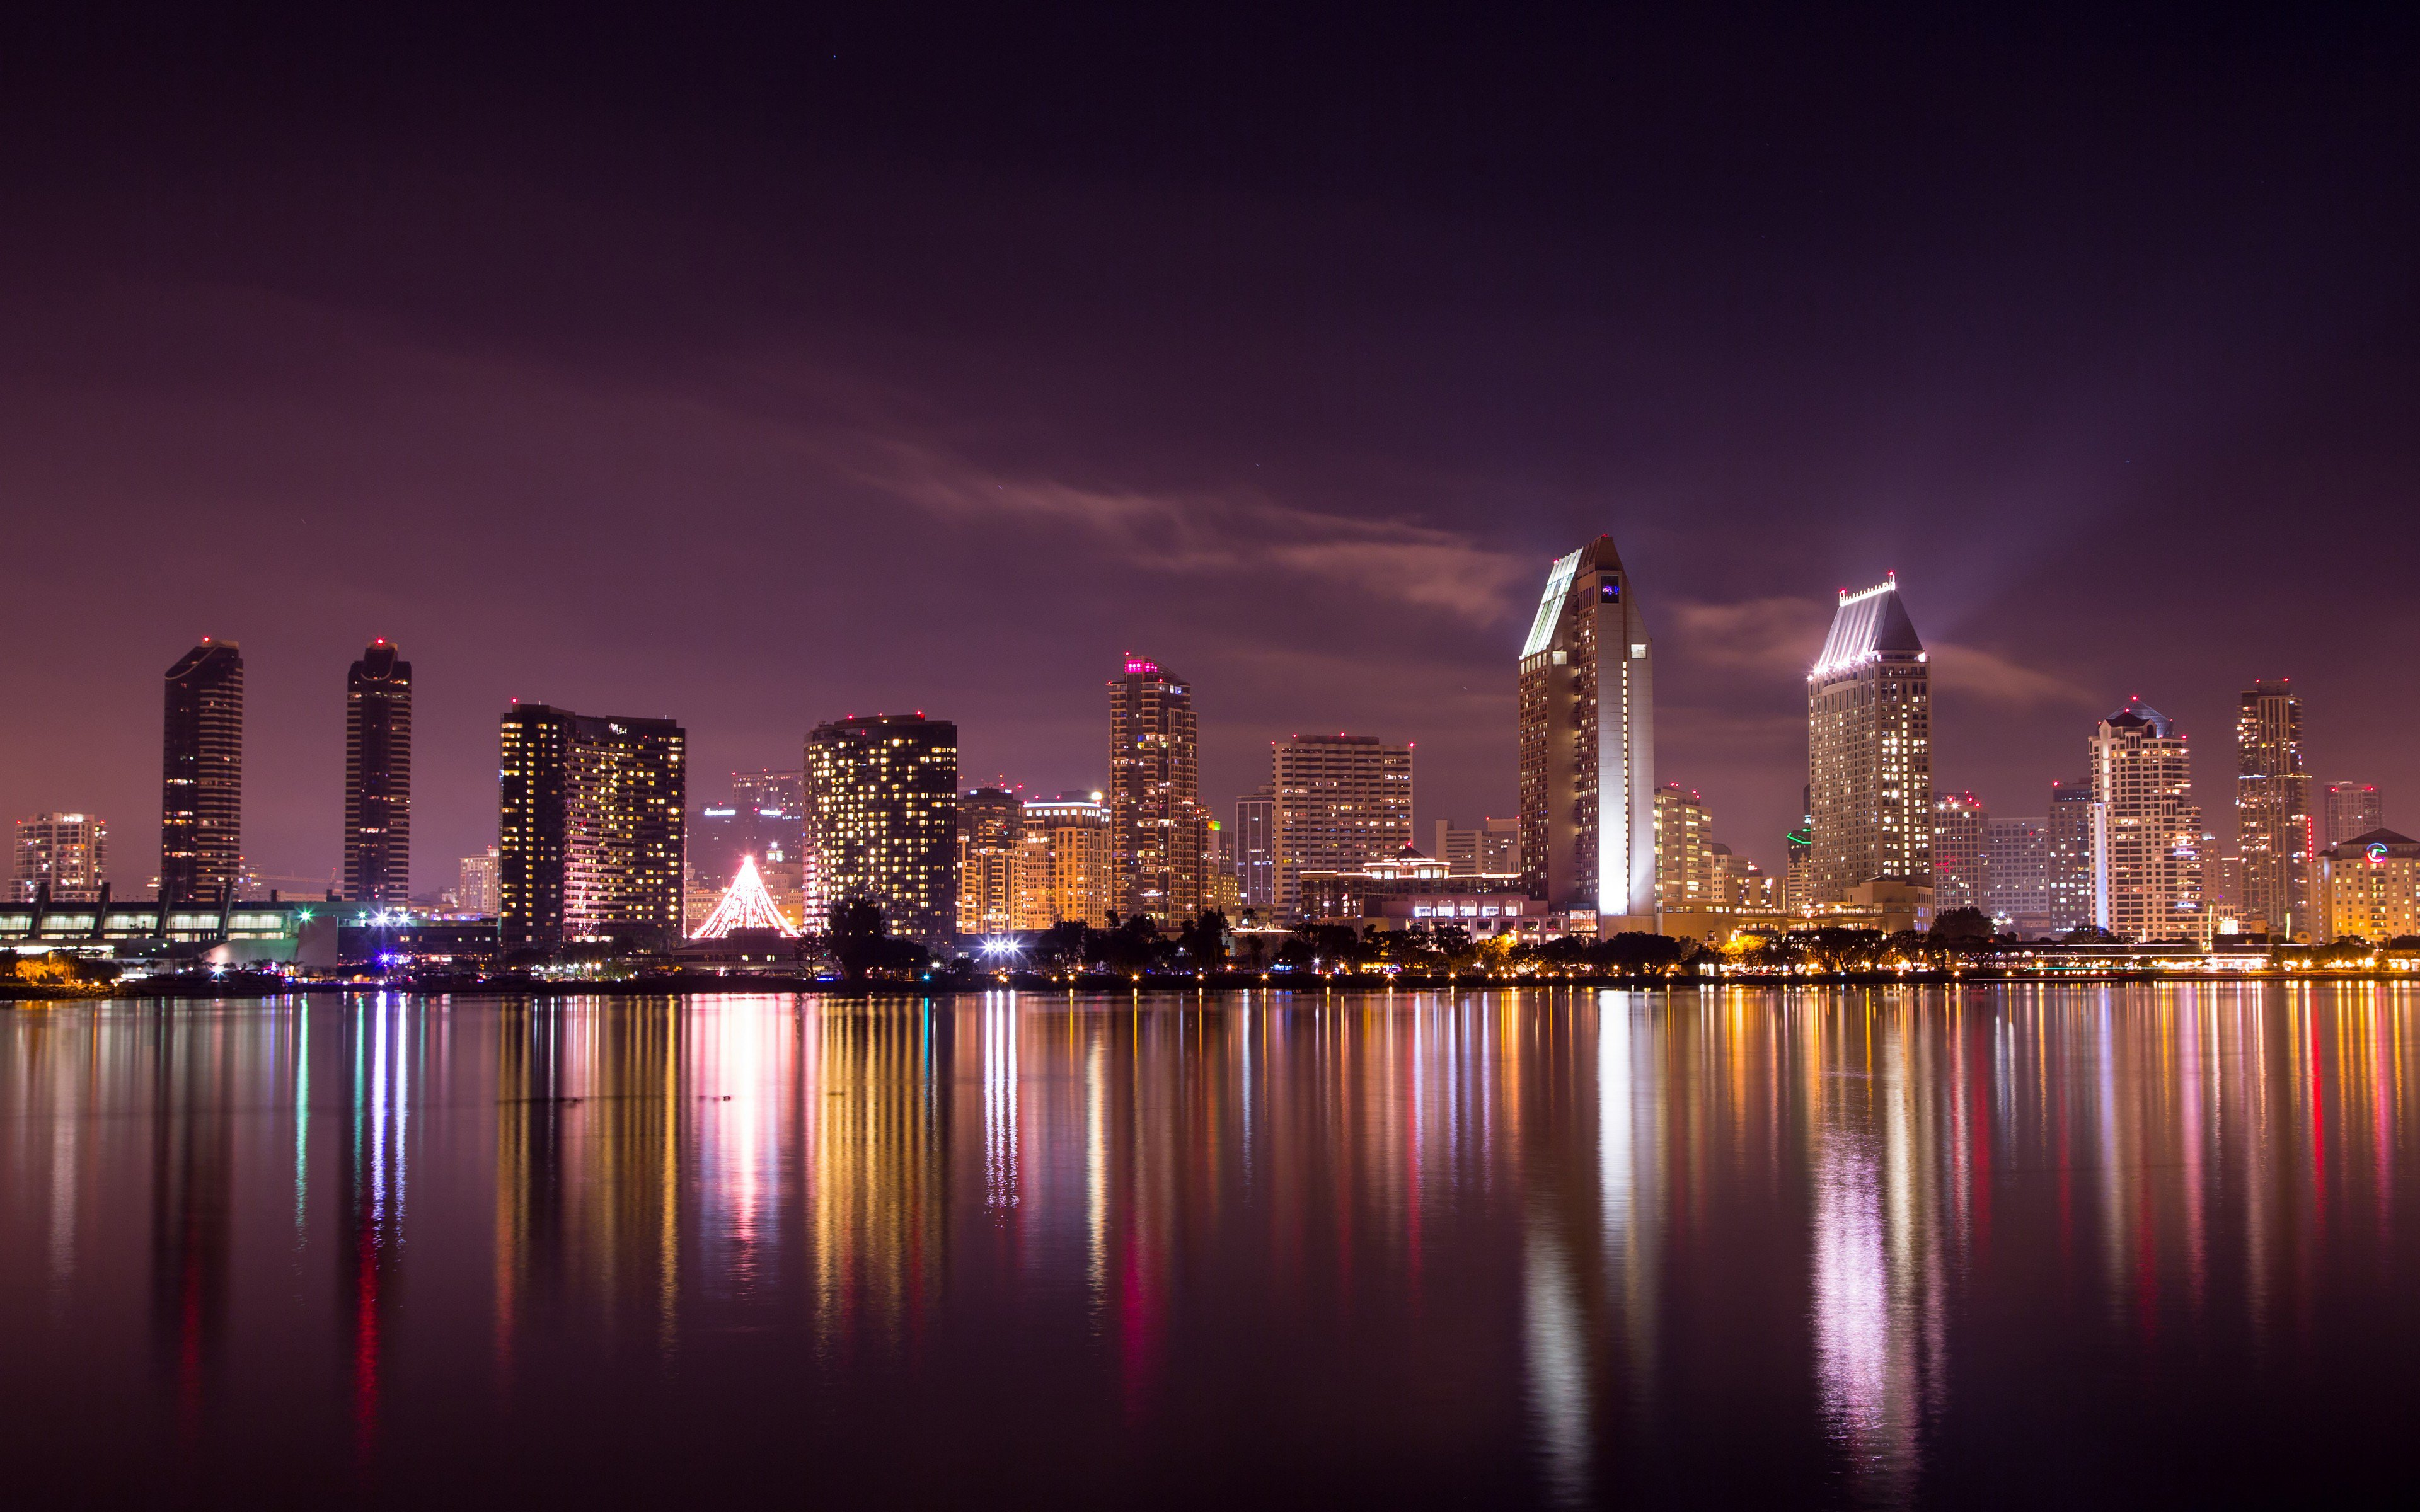 wallpaper san diego  San Diego Skyline, HD World, 4k Wallpapers, Images, Backgrounds ...